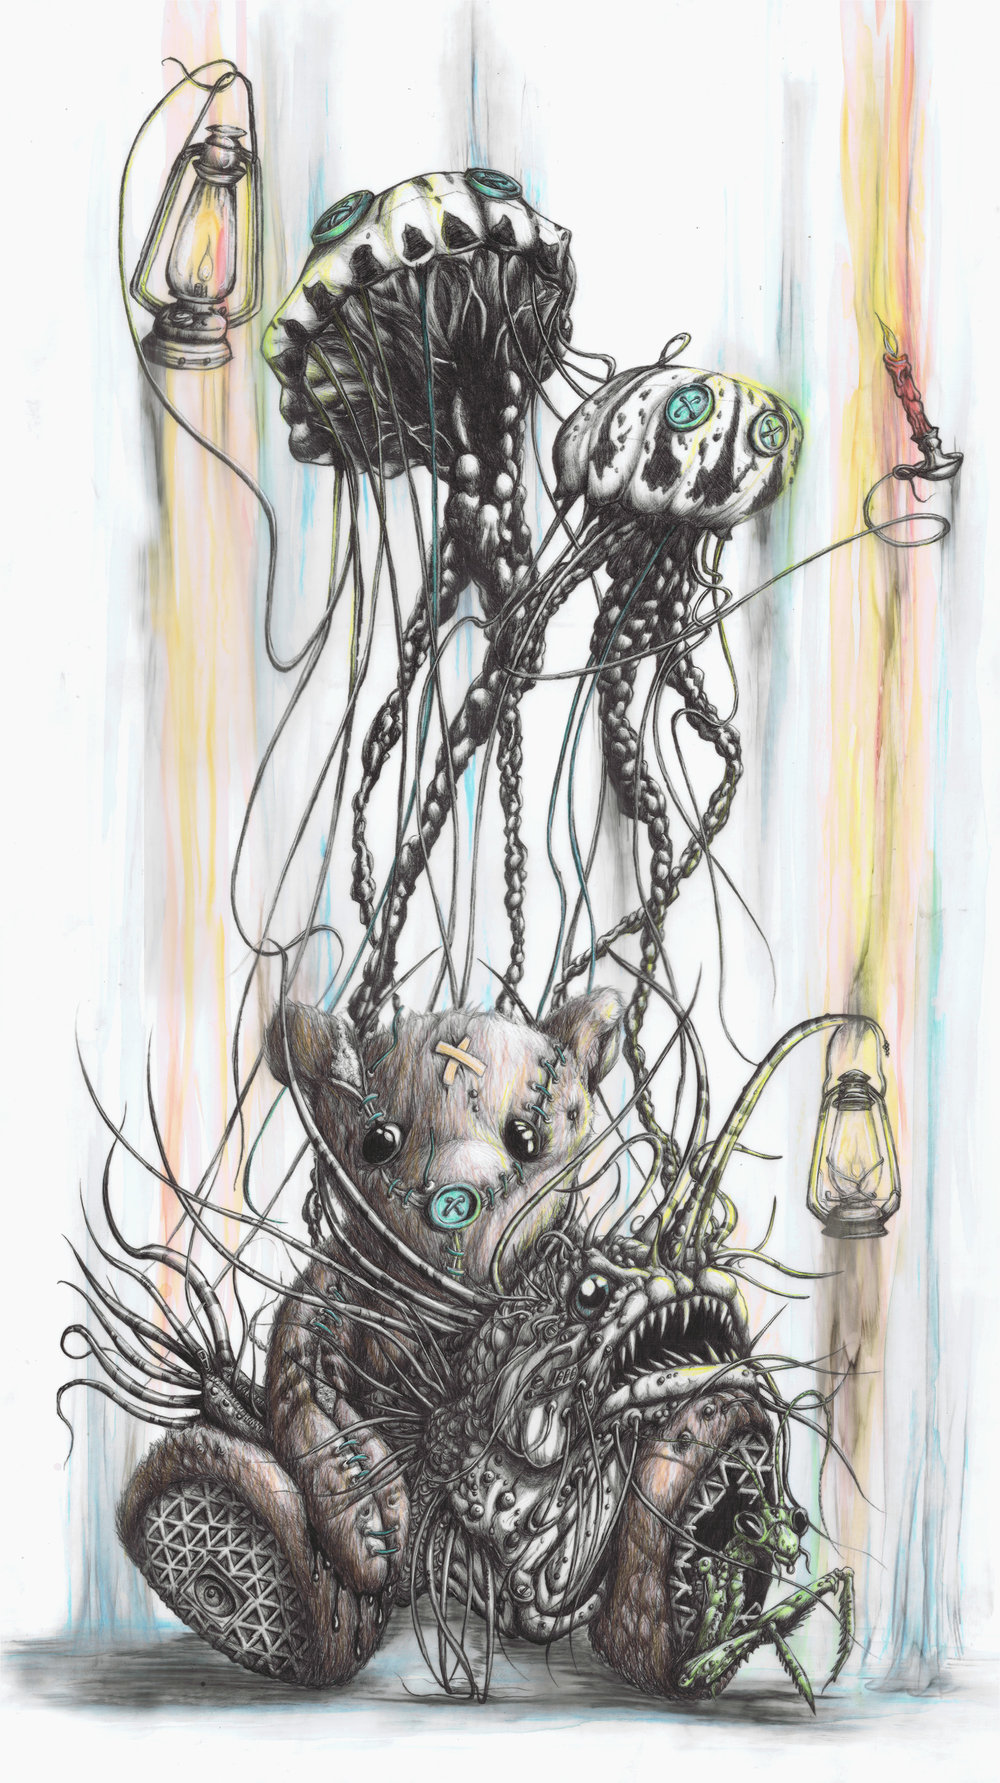 Who ever thought a ballpoint pen could bring forth so many incredible, nested figures? I can barely write my name. In the hand of a master like Tai, a grasshopper and an anglerfish emerge from a slightly worse-for-the-wear teddy and it all works.